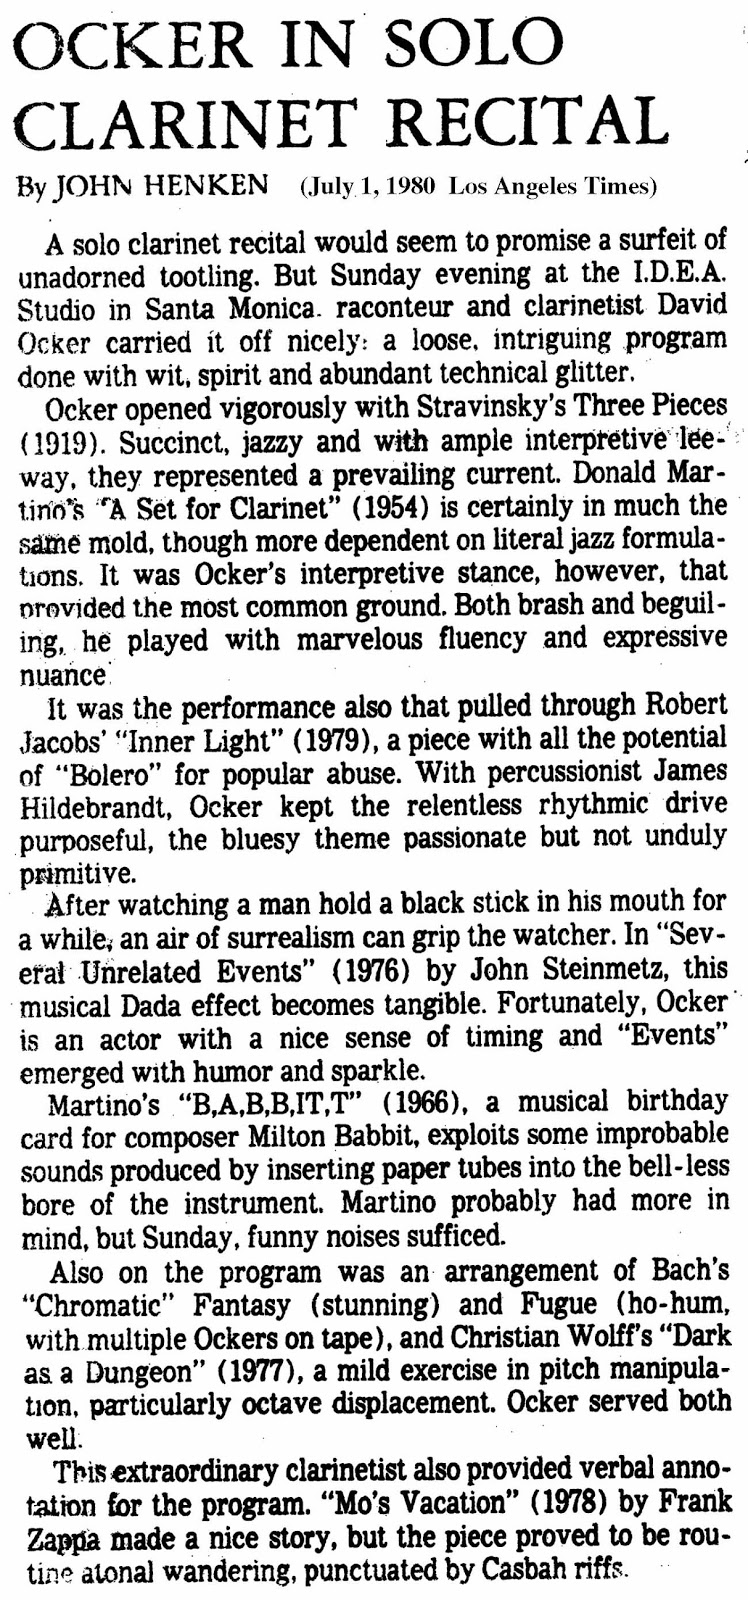 1980 Los Angeles Times Review of David Ocker clarinetist